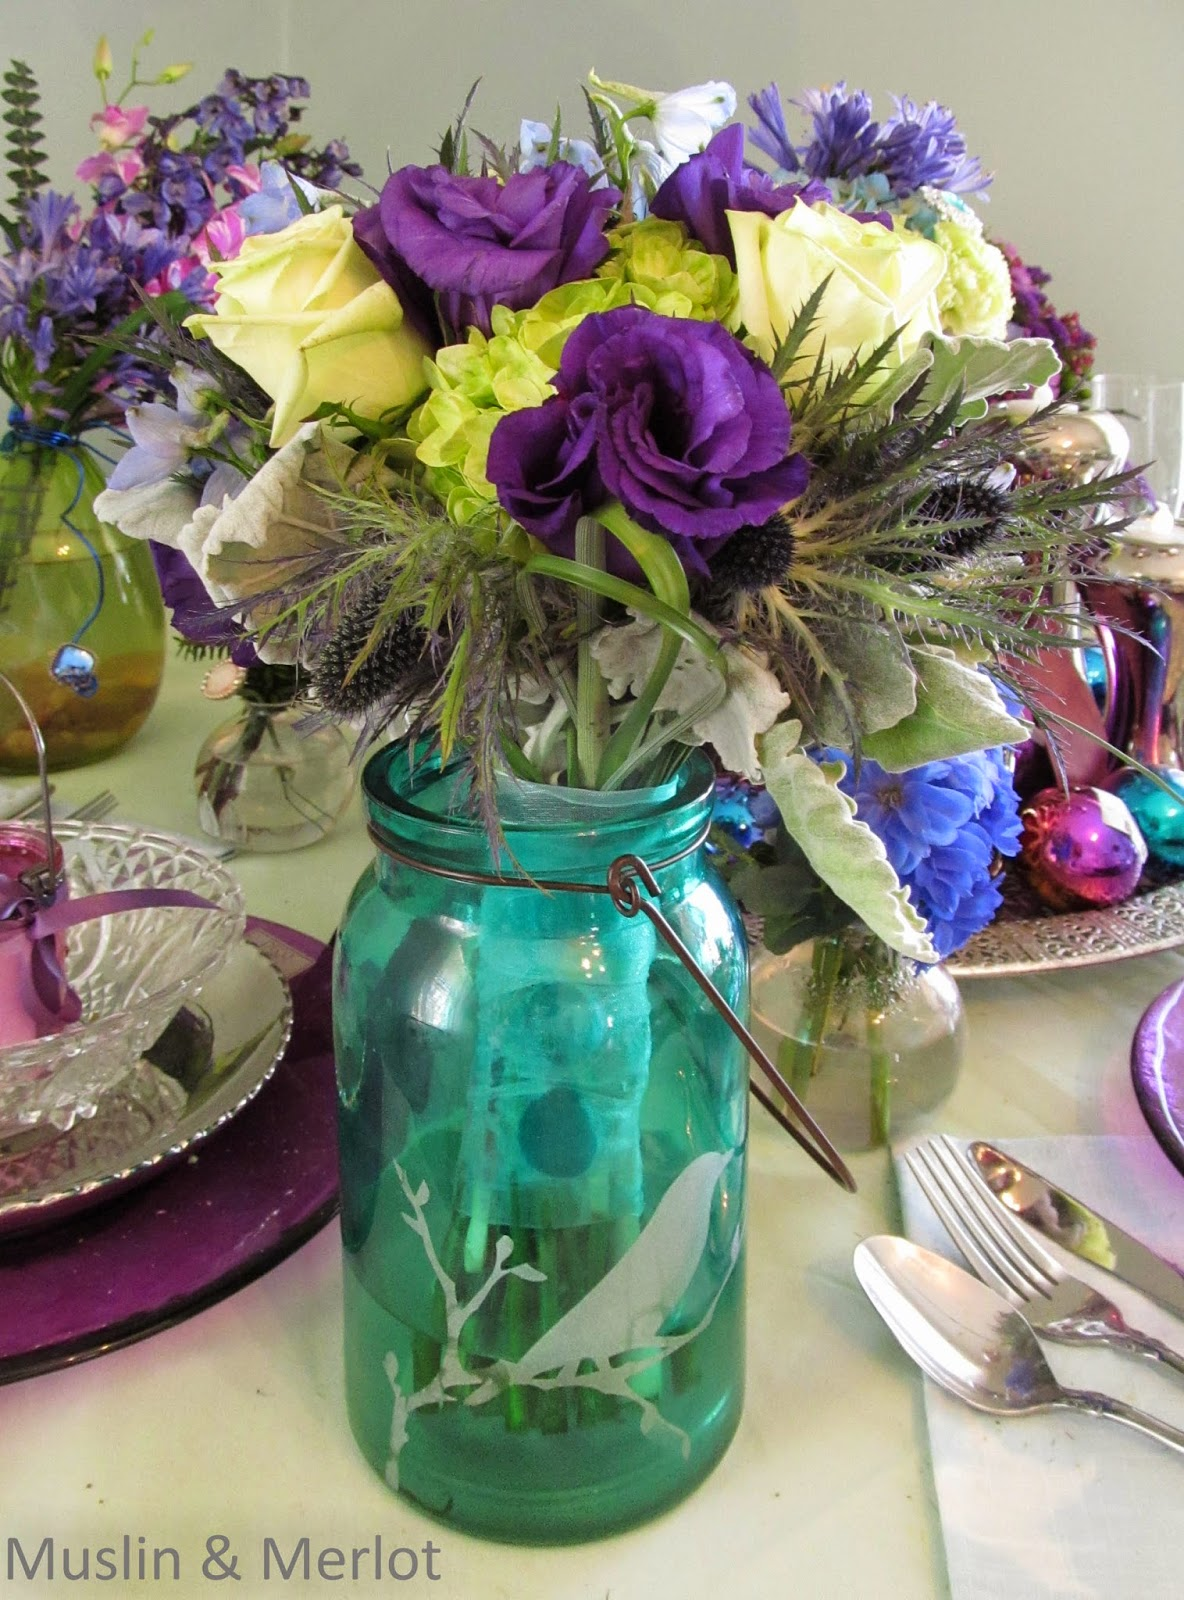 Stems wrapped in ribbon, placed in painted jar. Very pretty.